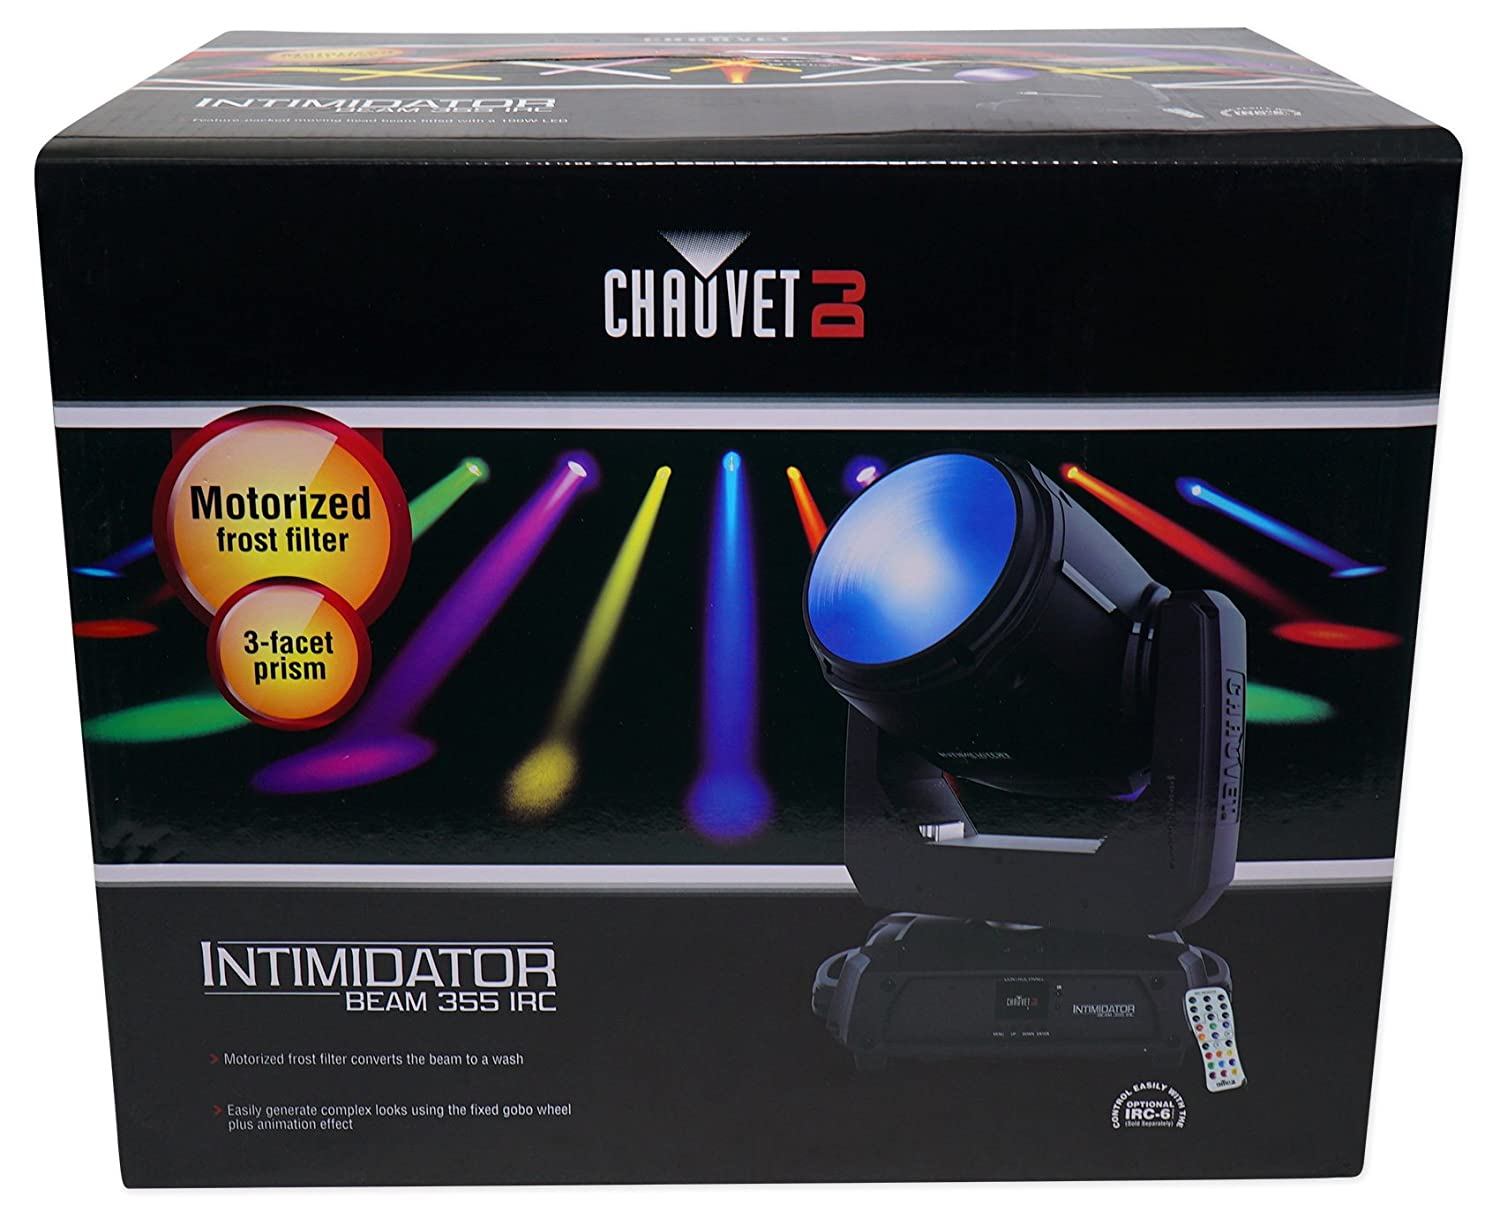 Amazon.com: Chauvet DJ Intimidator Beam 355 IRC Moving Head+Adjustable Totem Light Stand: Musical Instruments